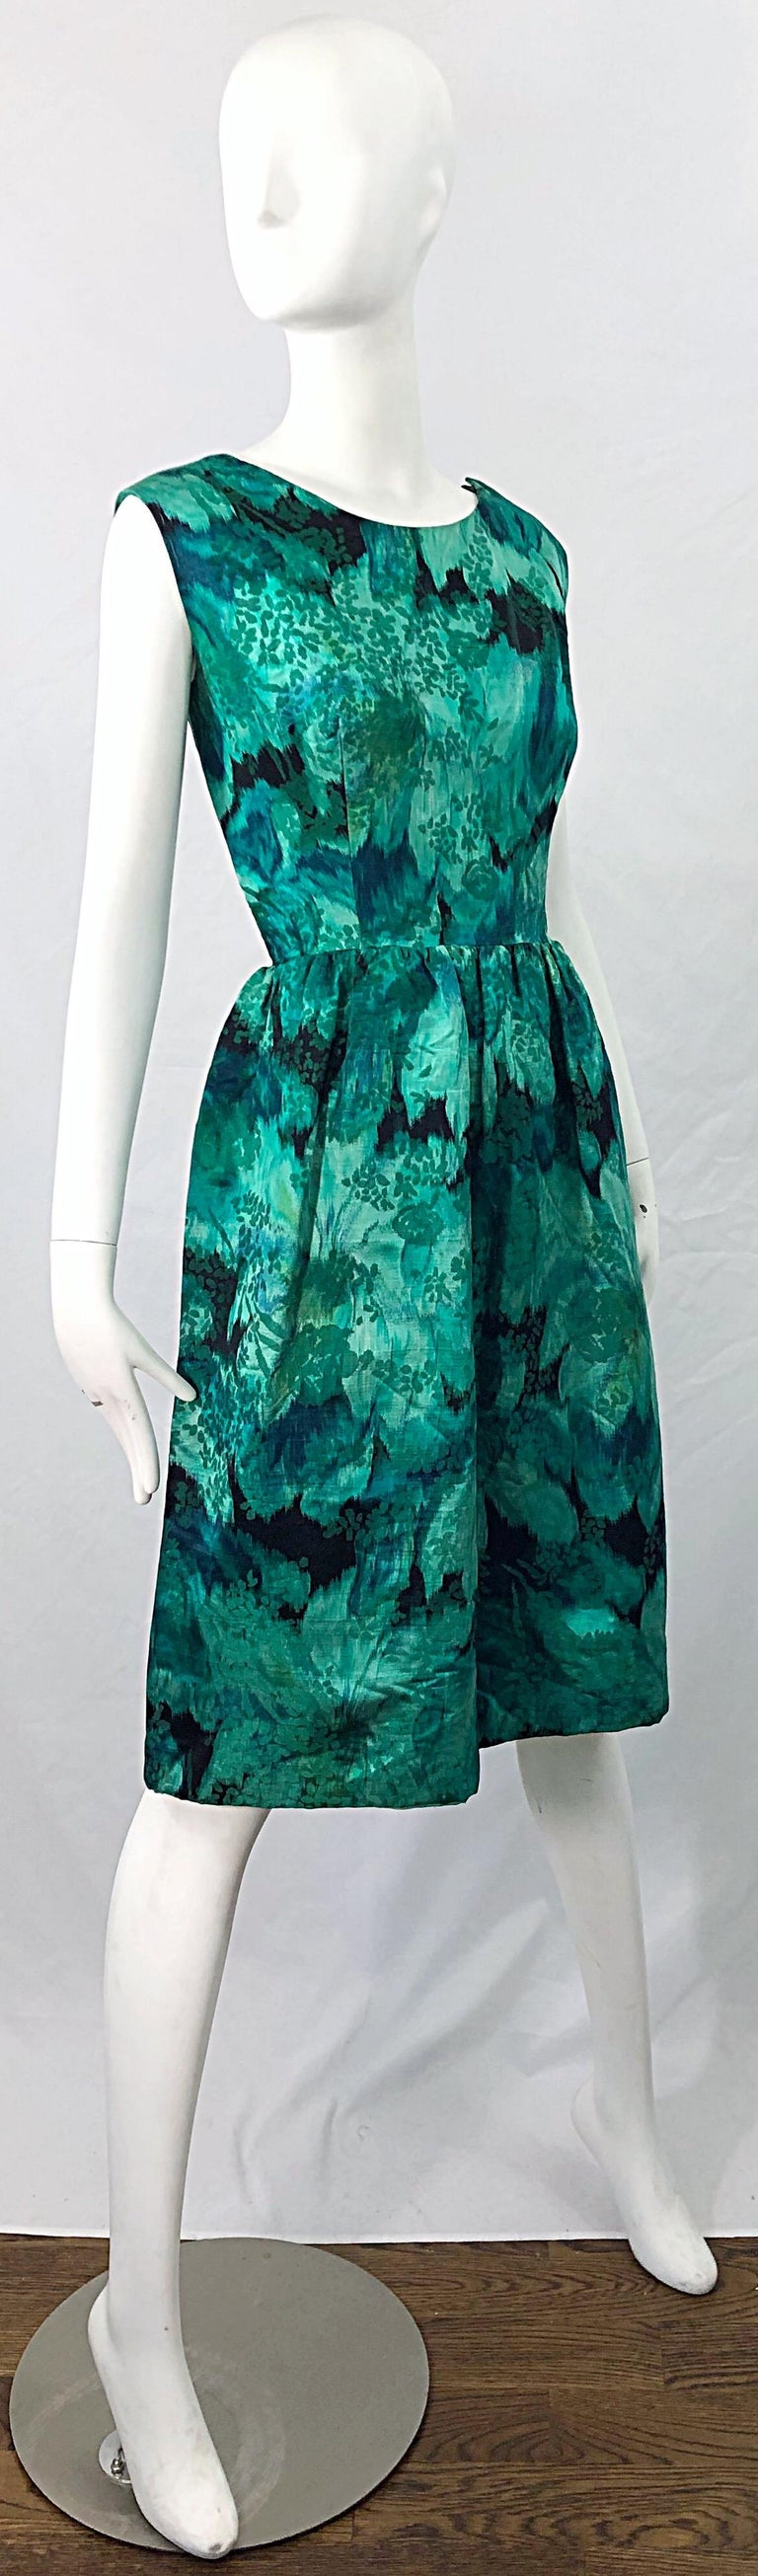 1950s Demi Couture Green Botanical Floral Silk Fit n' Flare Vintage 50s Dress For Sale 2